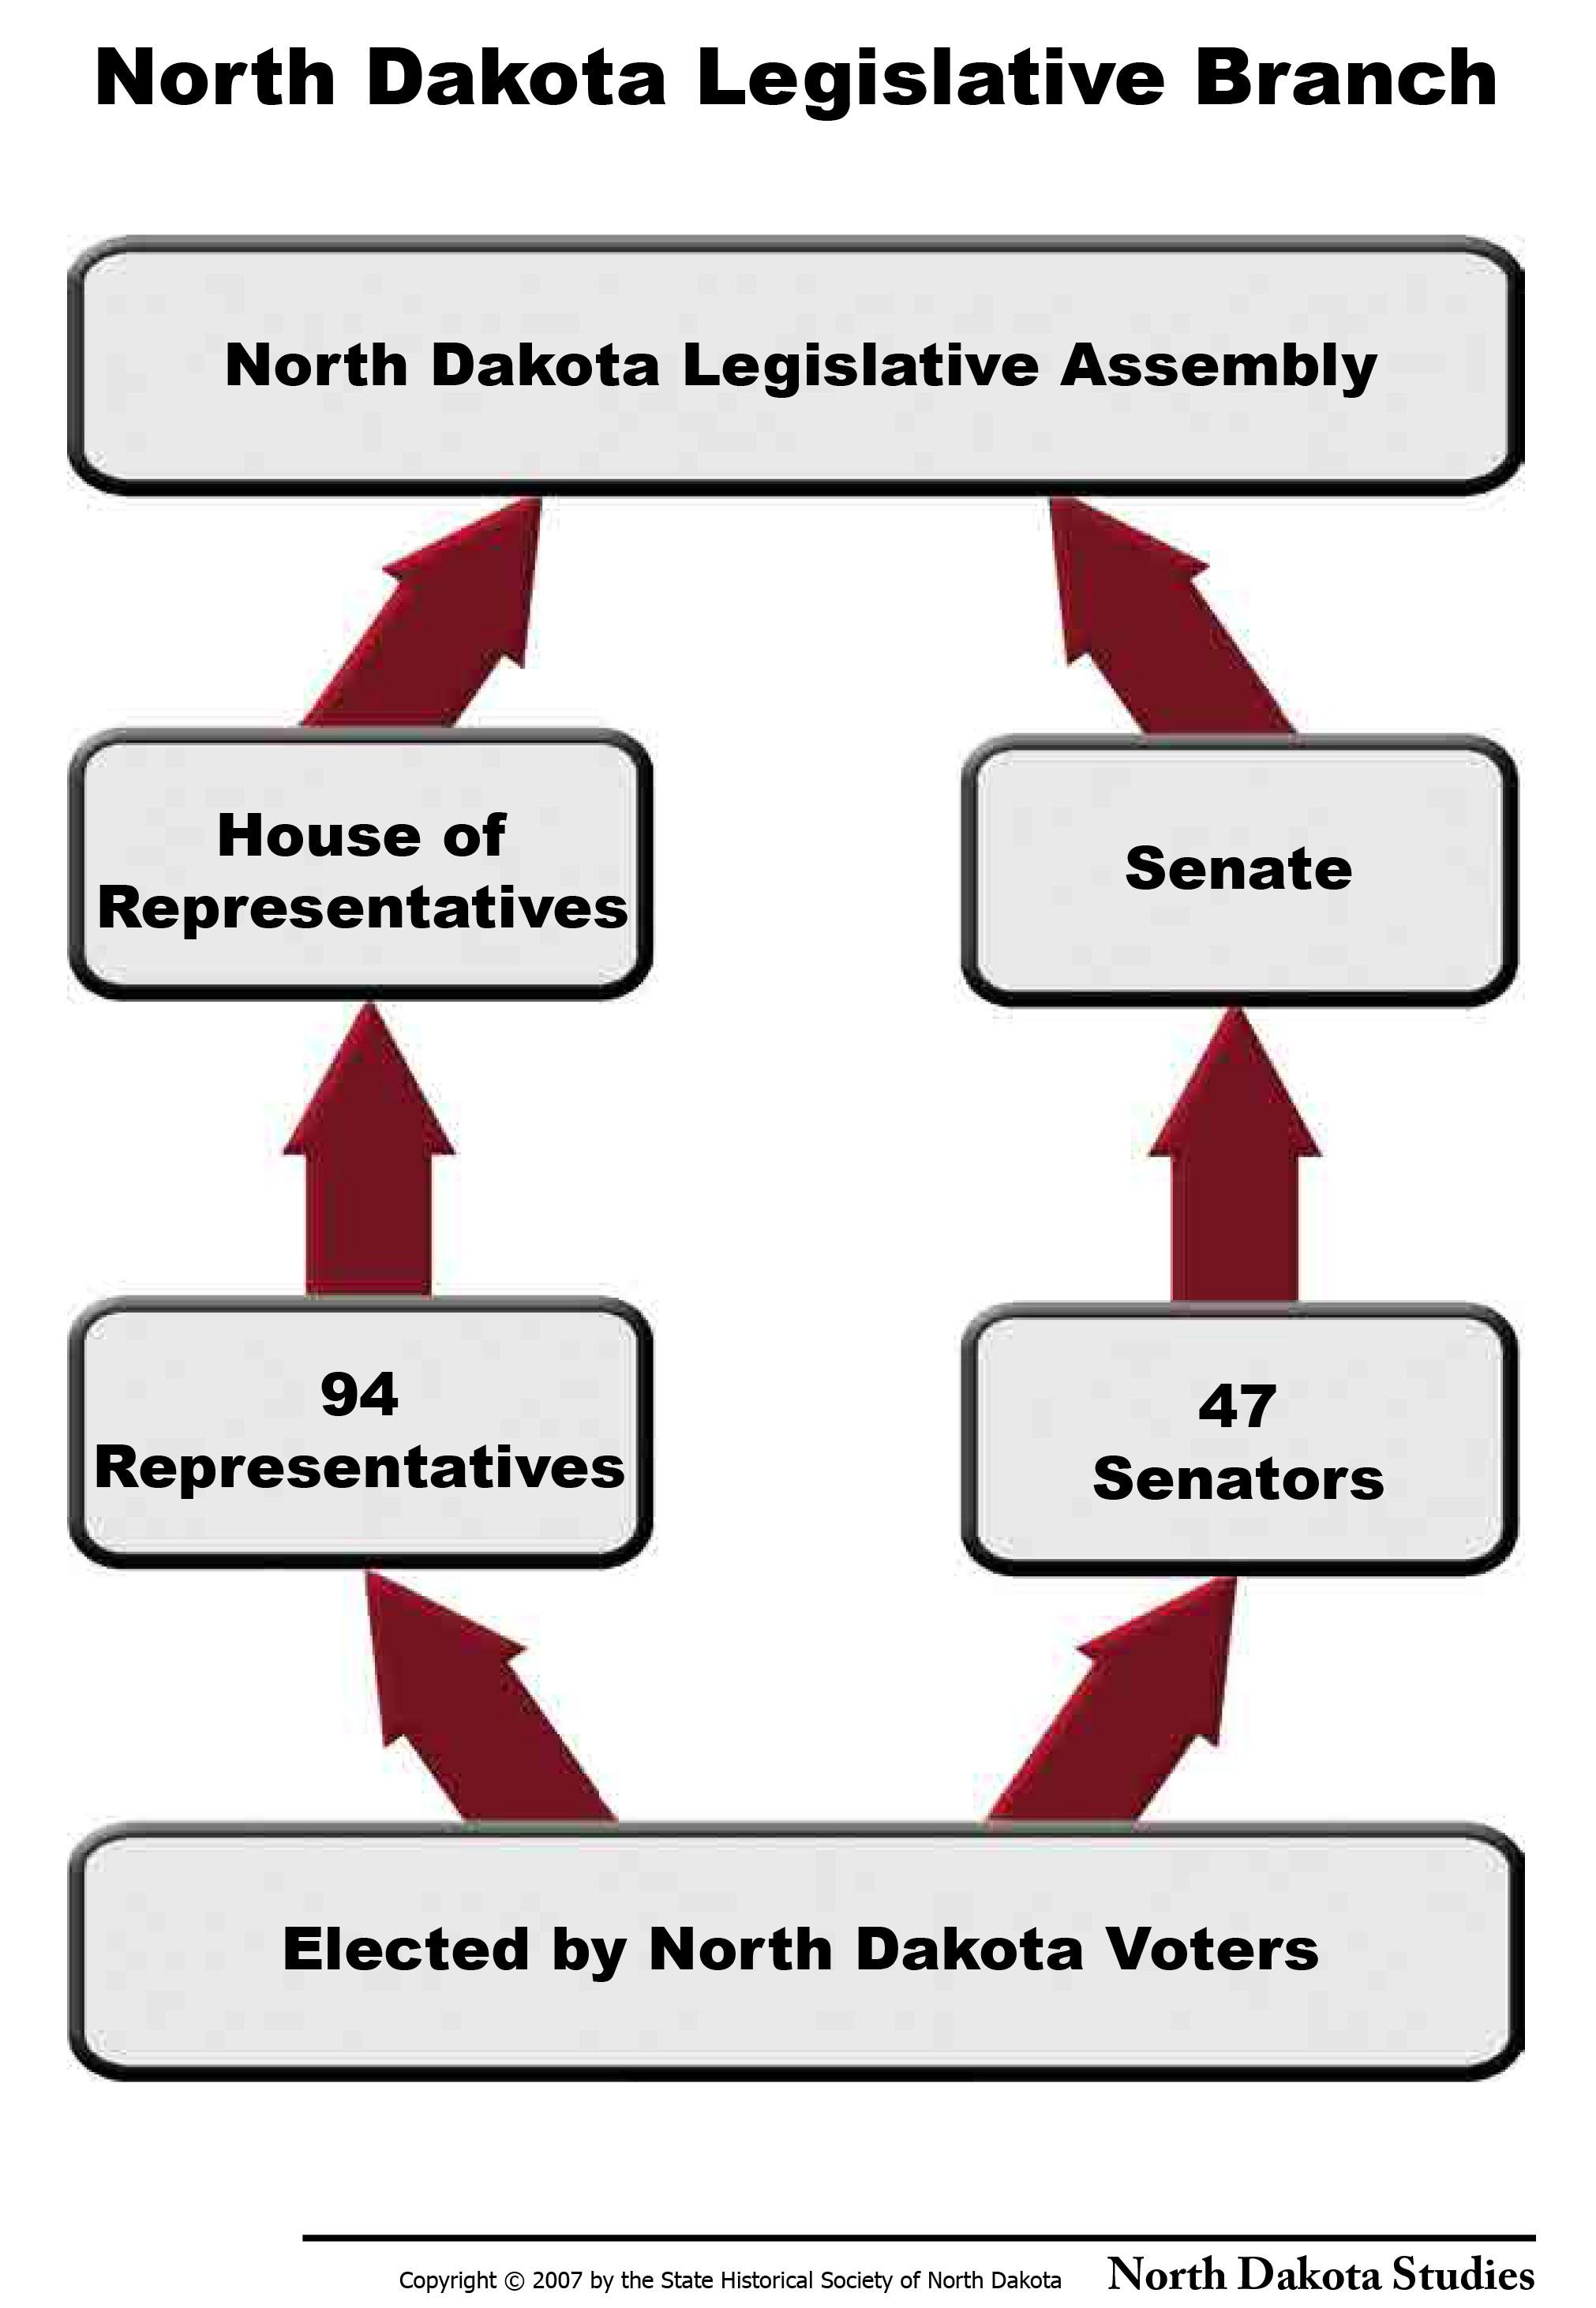 ND Legislative Branch flowchart